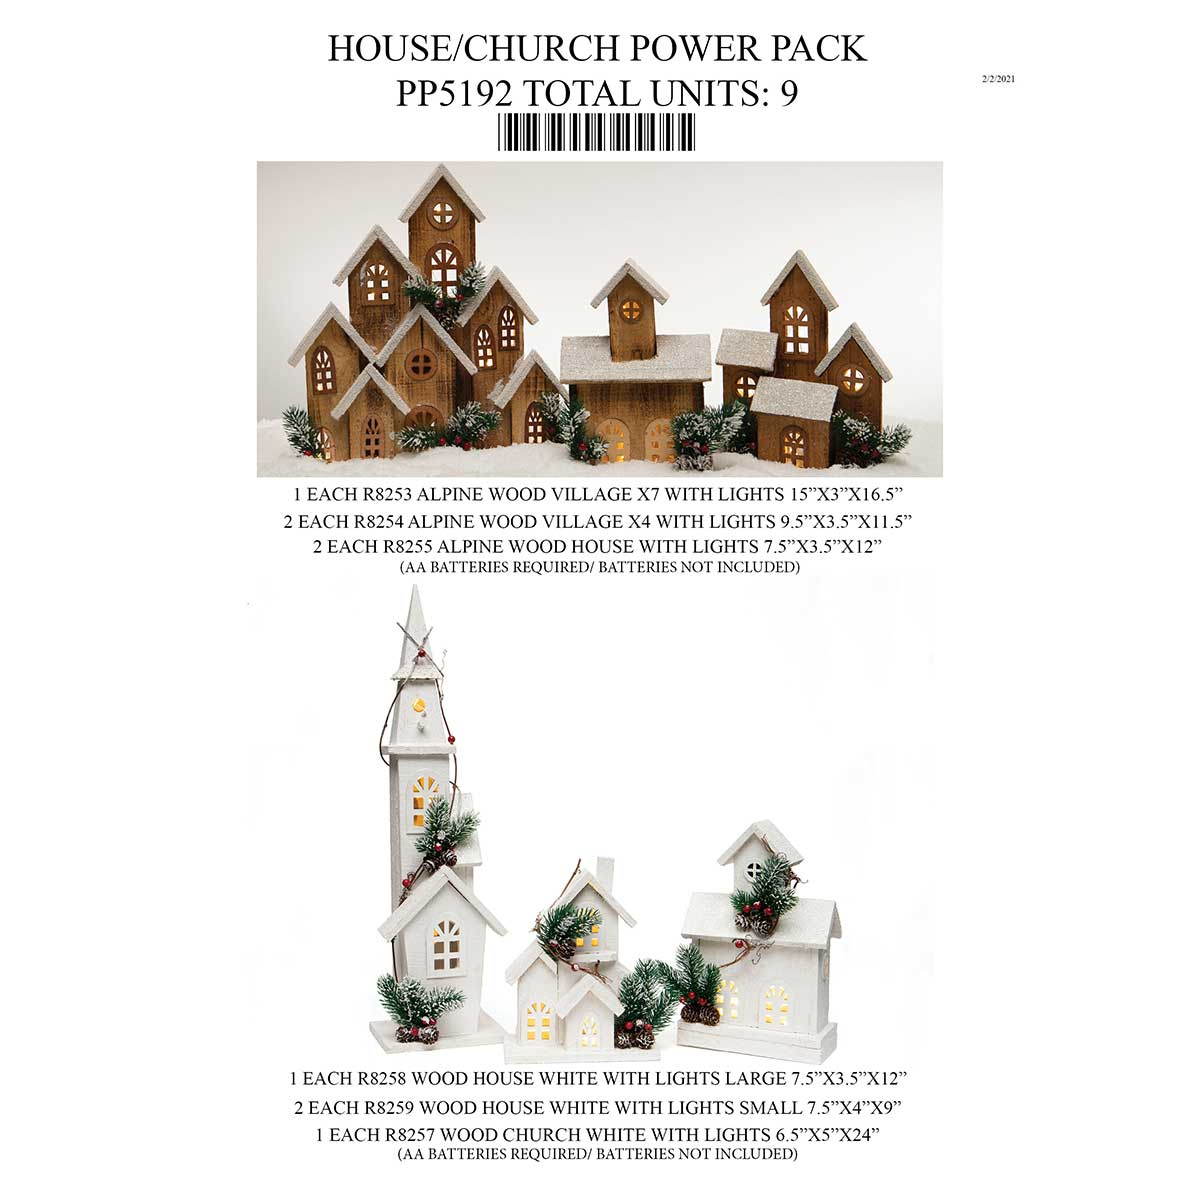 WOOD HOUSE/CHURCH POWER PACK 9 UNITS PP5192